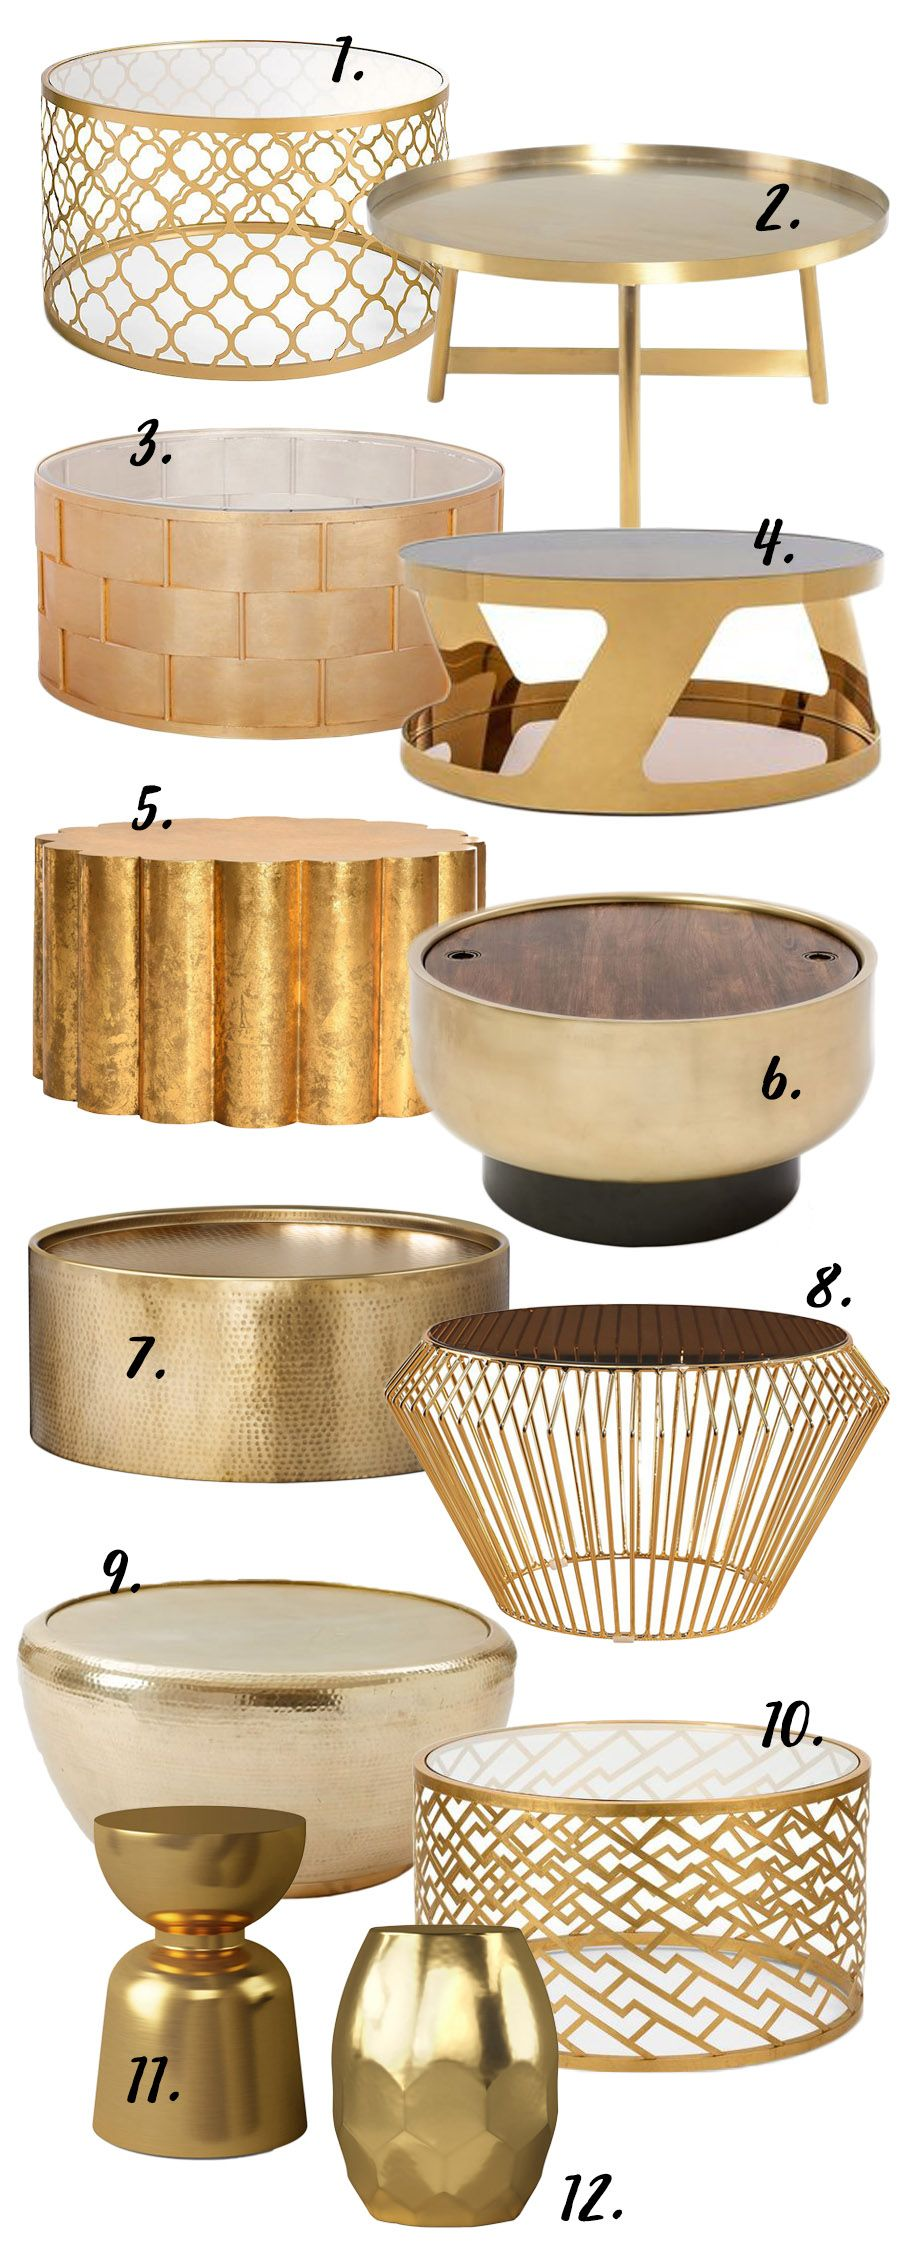 The Gold Round Coffee Table 12 Stylish Options Round Gold Coffee Table Round Coffee Table Decor Living Room Coffee Table